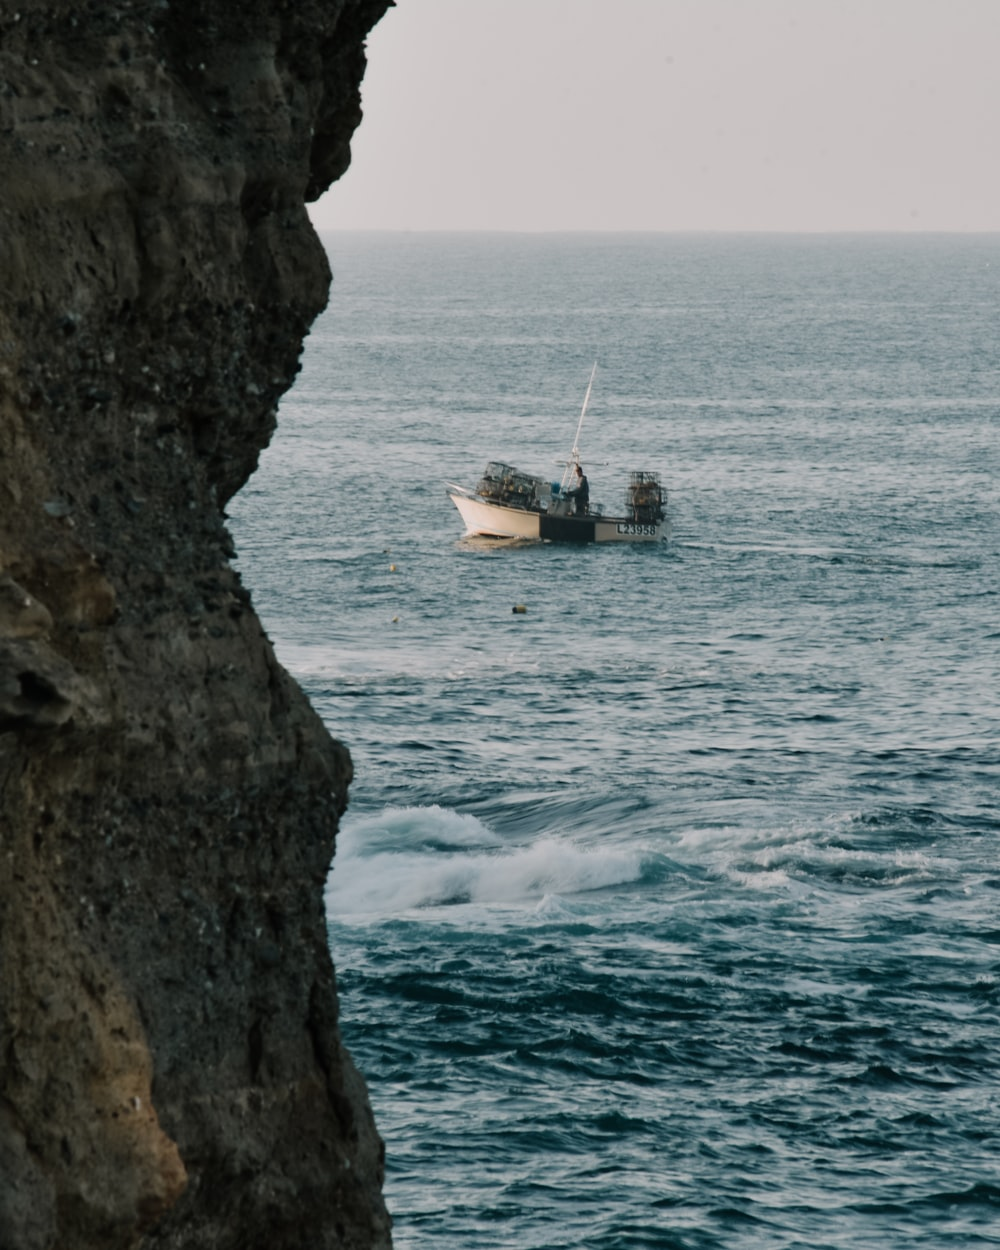 white boat on sea beside brown rock formation during daytime